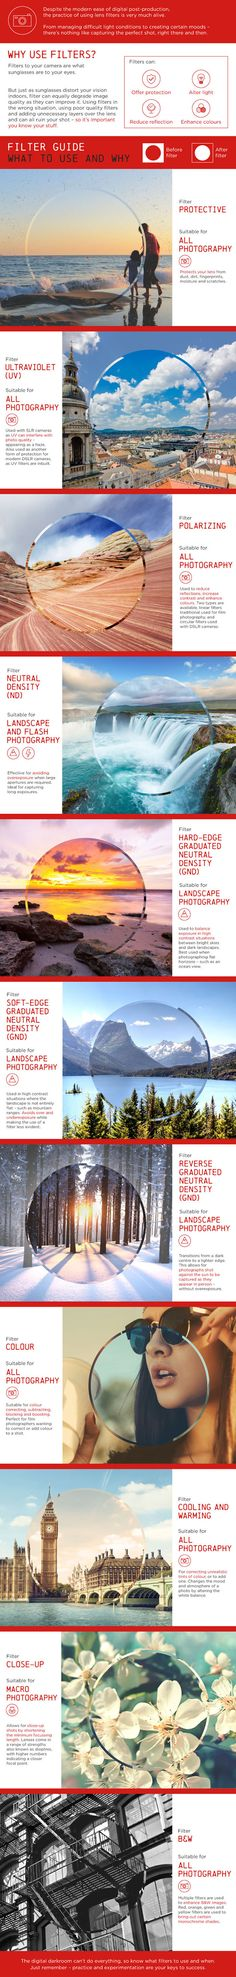 For Photographers: Ultimate Cheat Sheet On What Lens Filter To Use And Why - DesignTAXI.com